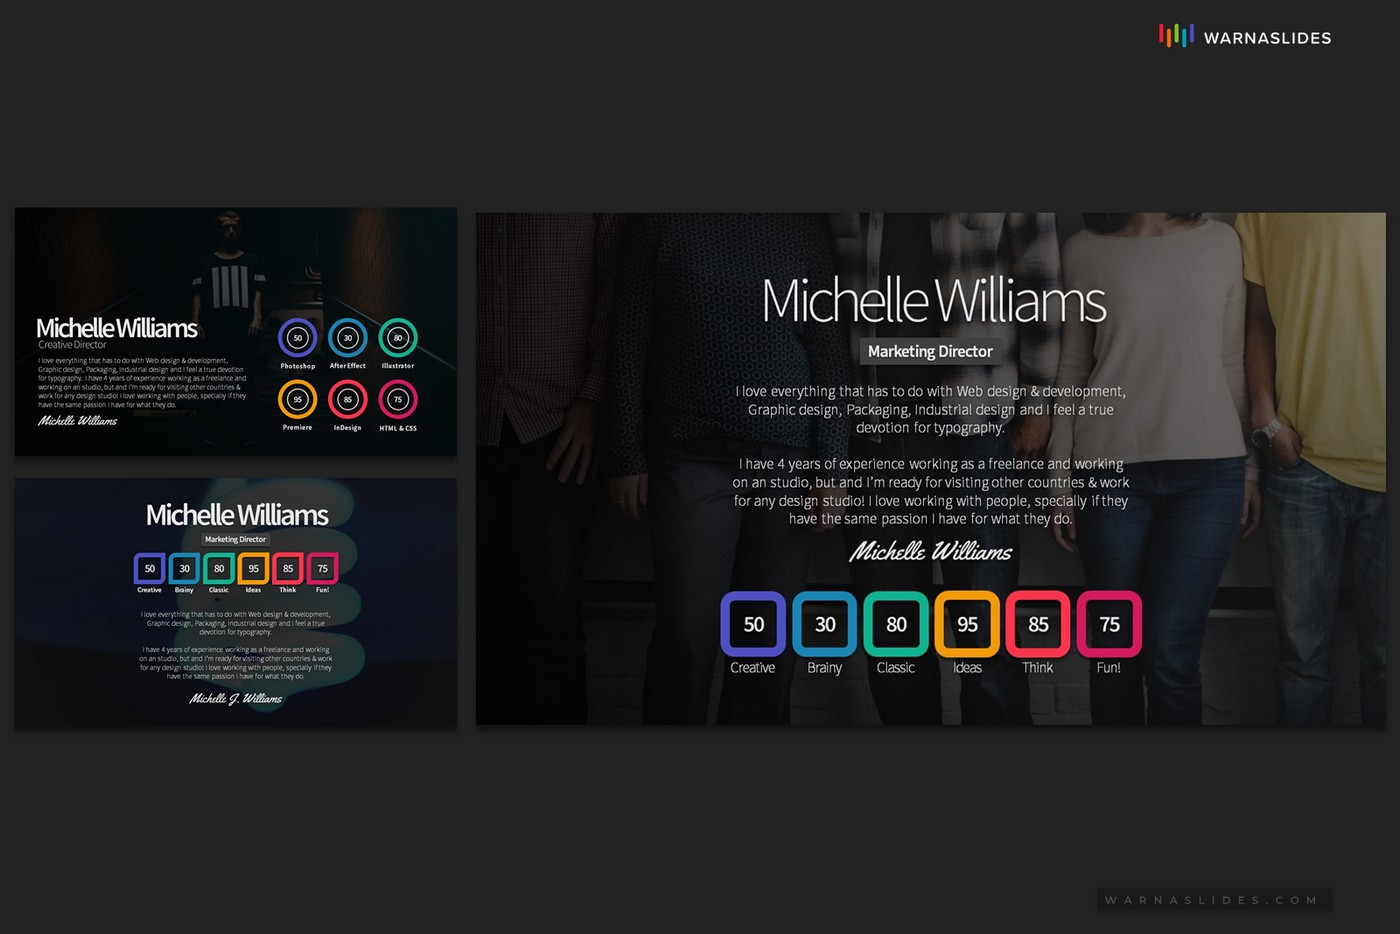 About-Me-Resume-Profile-PowerPoint-Template-2020-Skill-Expertise-for-Business-Pitch-Deck-Professional-Creative-Presentation-by-Warna-Slides-014